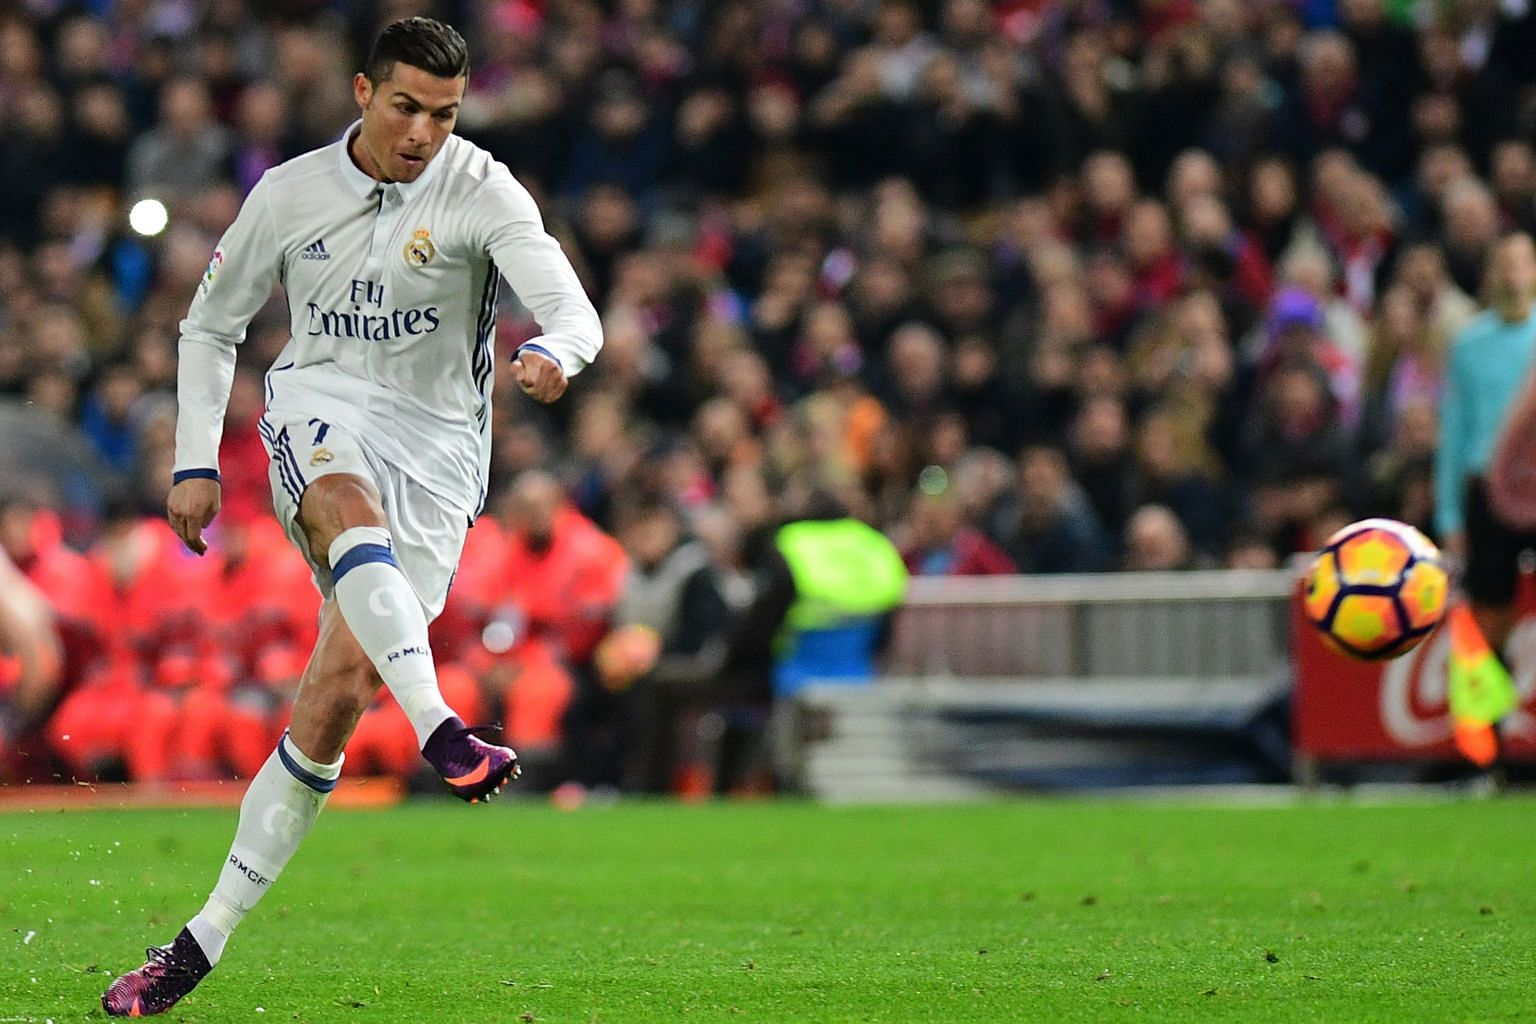 Cristiano Ronaldo opening accounts for Real with this free kick. His second-half penalty and tap-in took his derby tally to 18 goals and stretched the team's lead over second-placed Barcelona to four points.